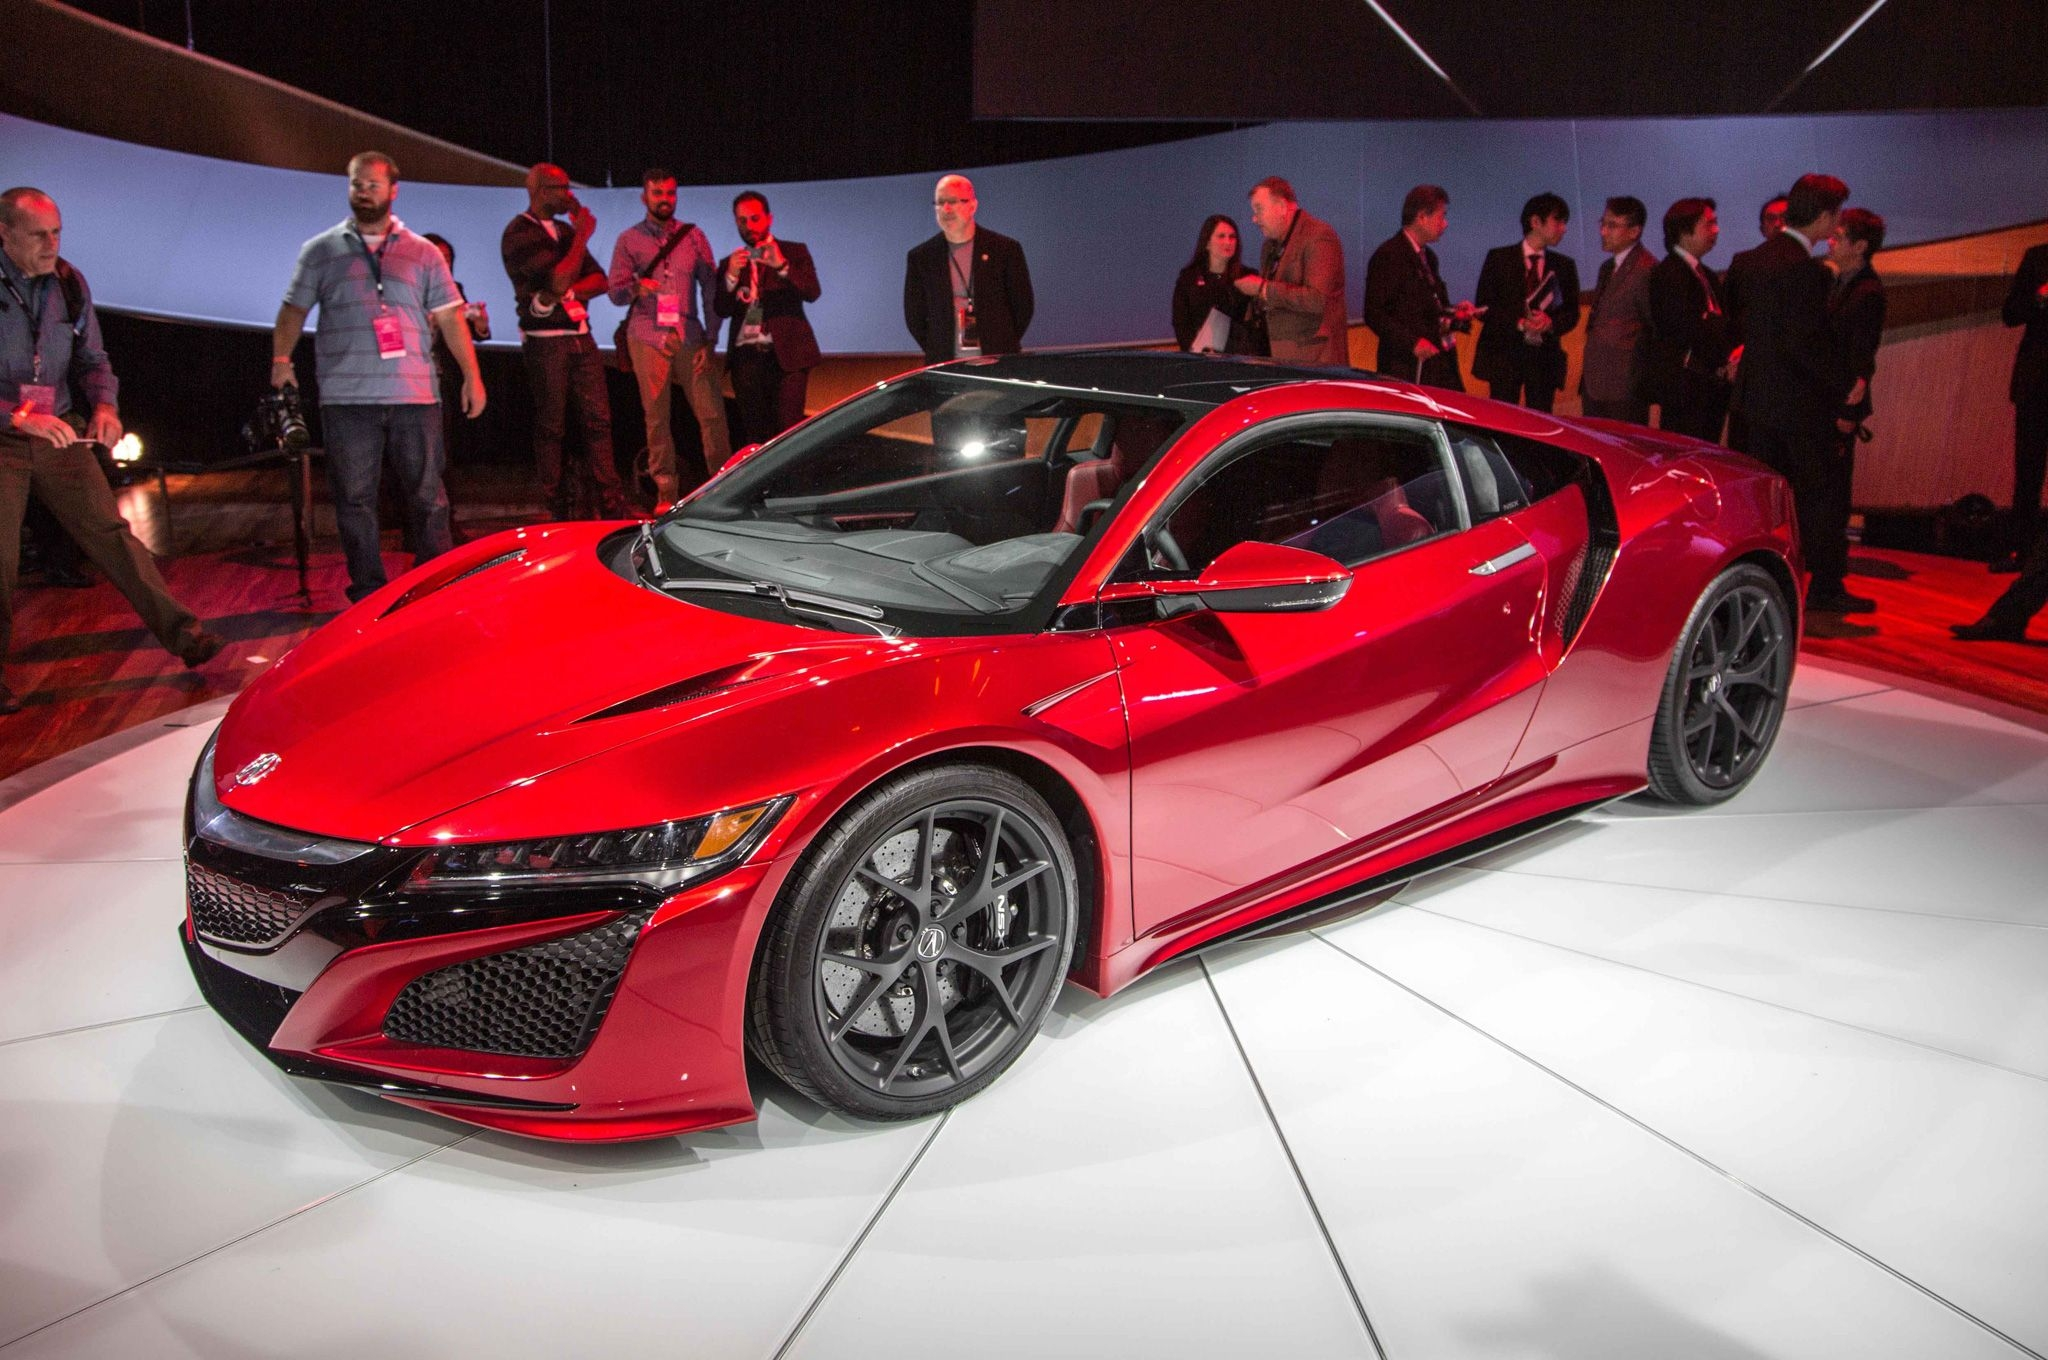 2018 Acura Nsx Price And Concept Noorcars Com